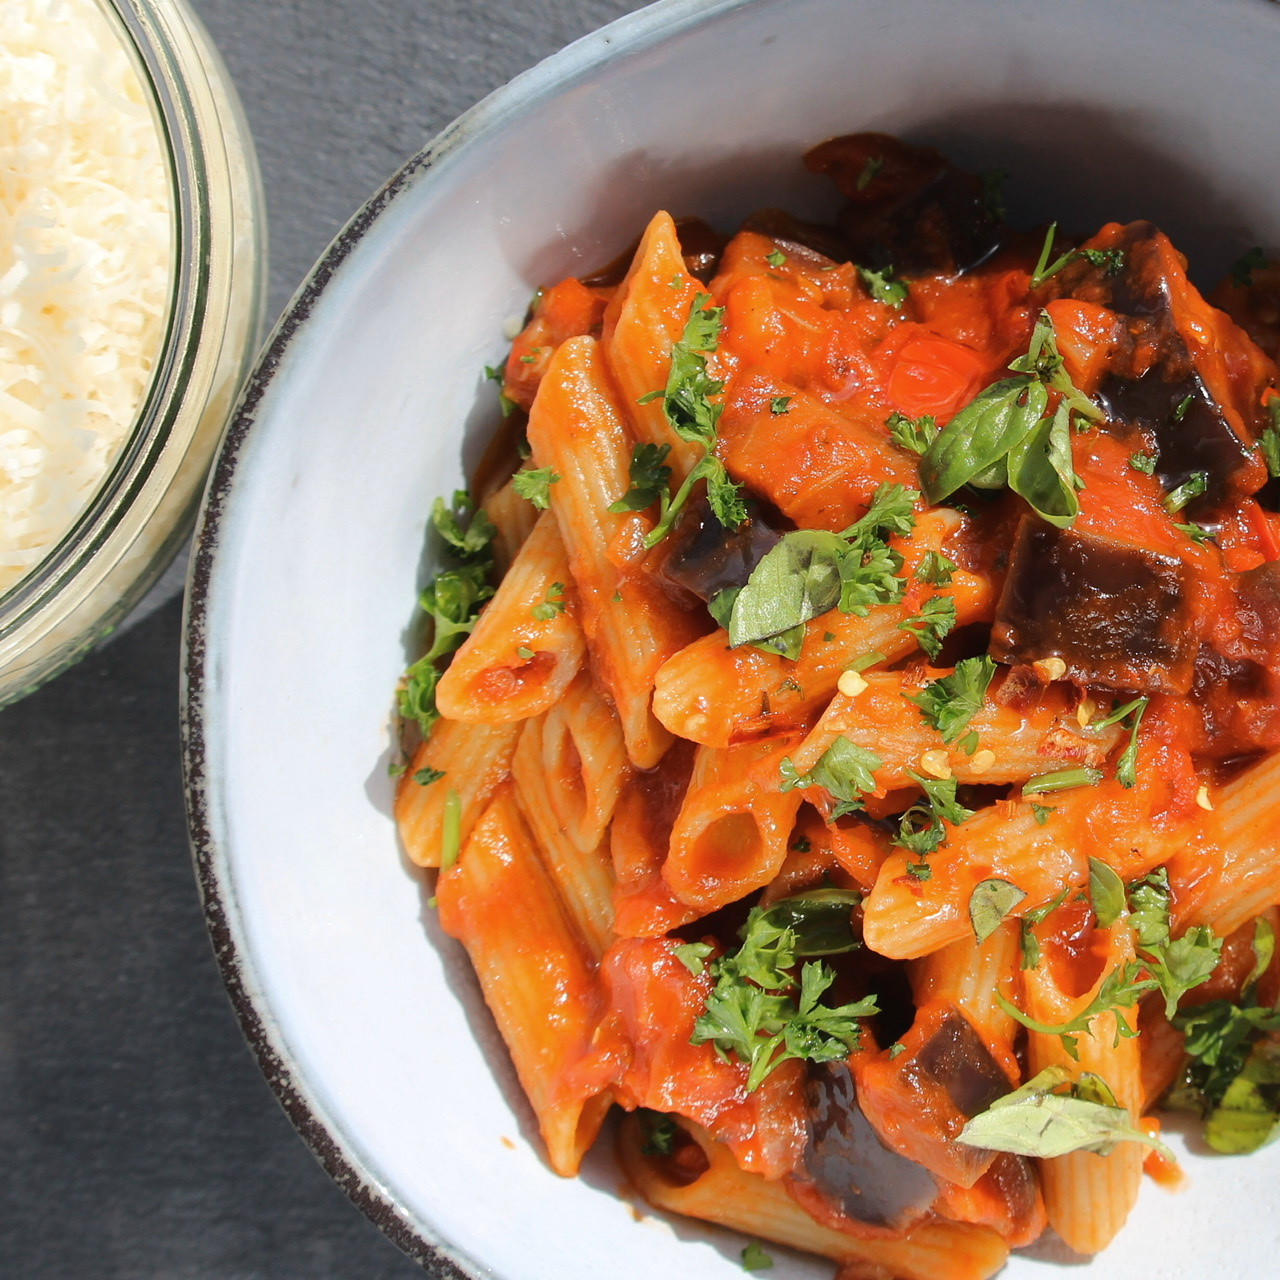 Spicy Eggplant and Pasta with Pancetta